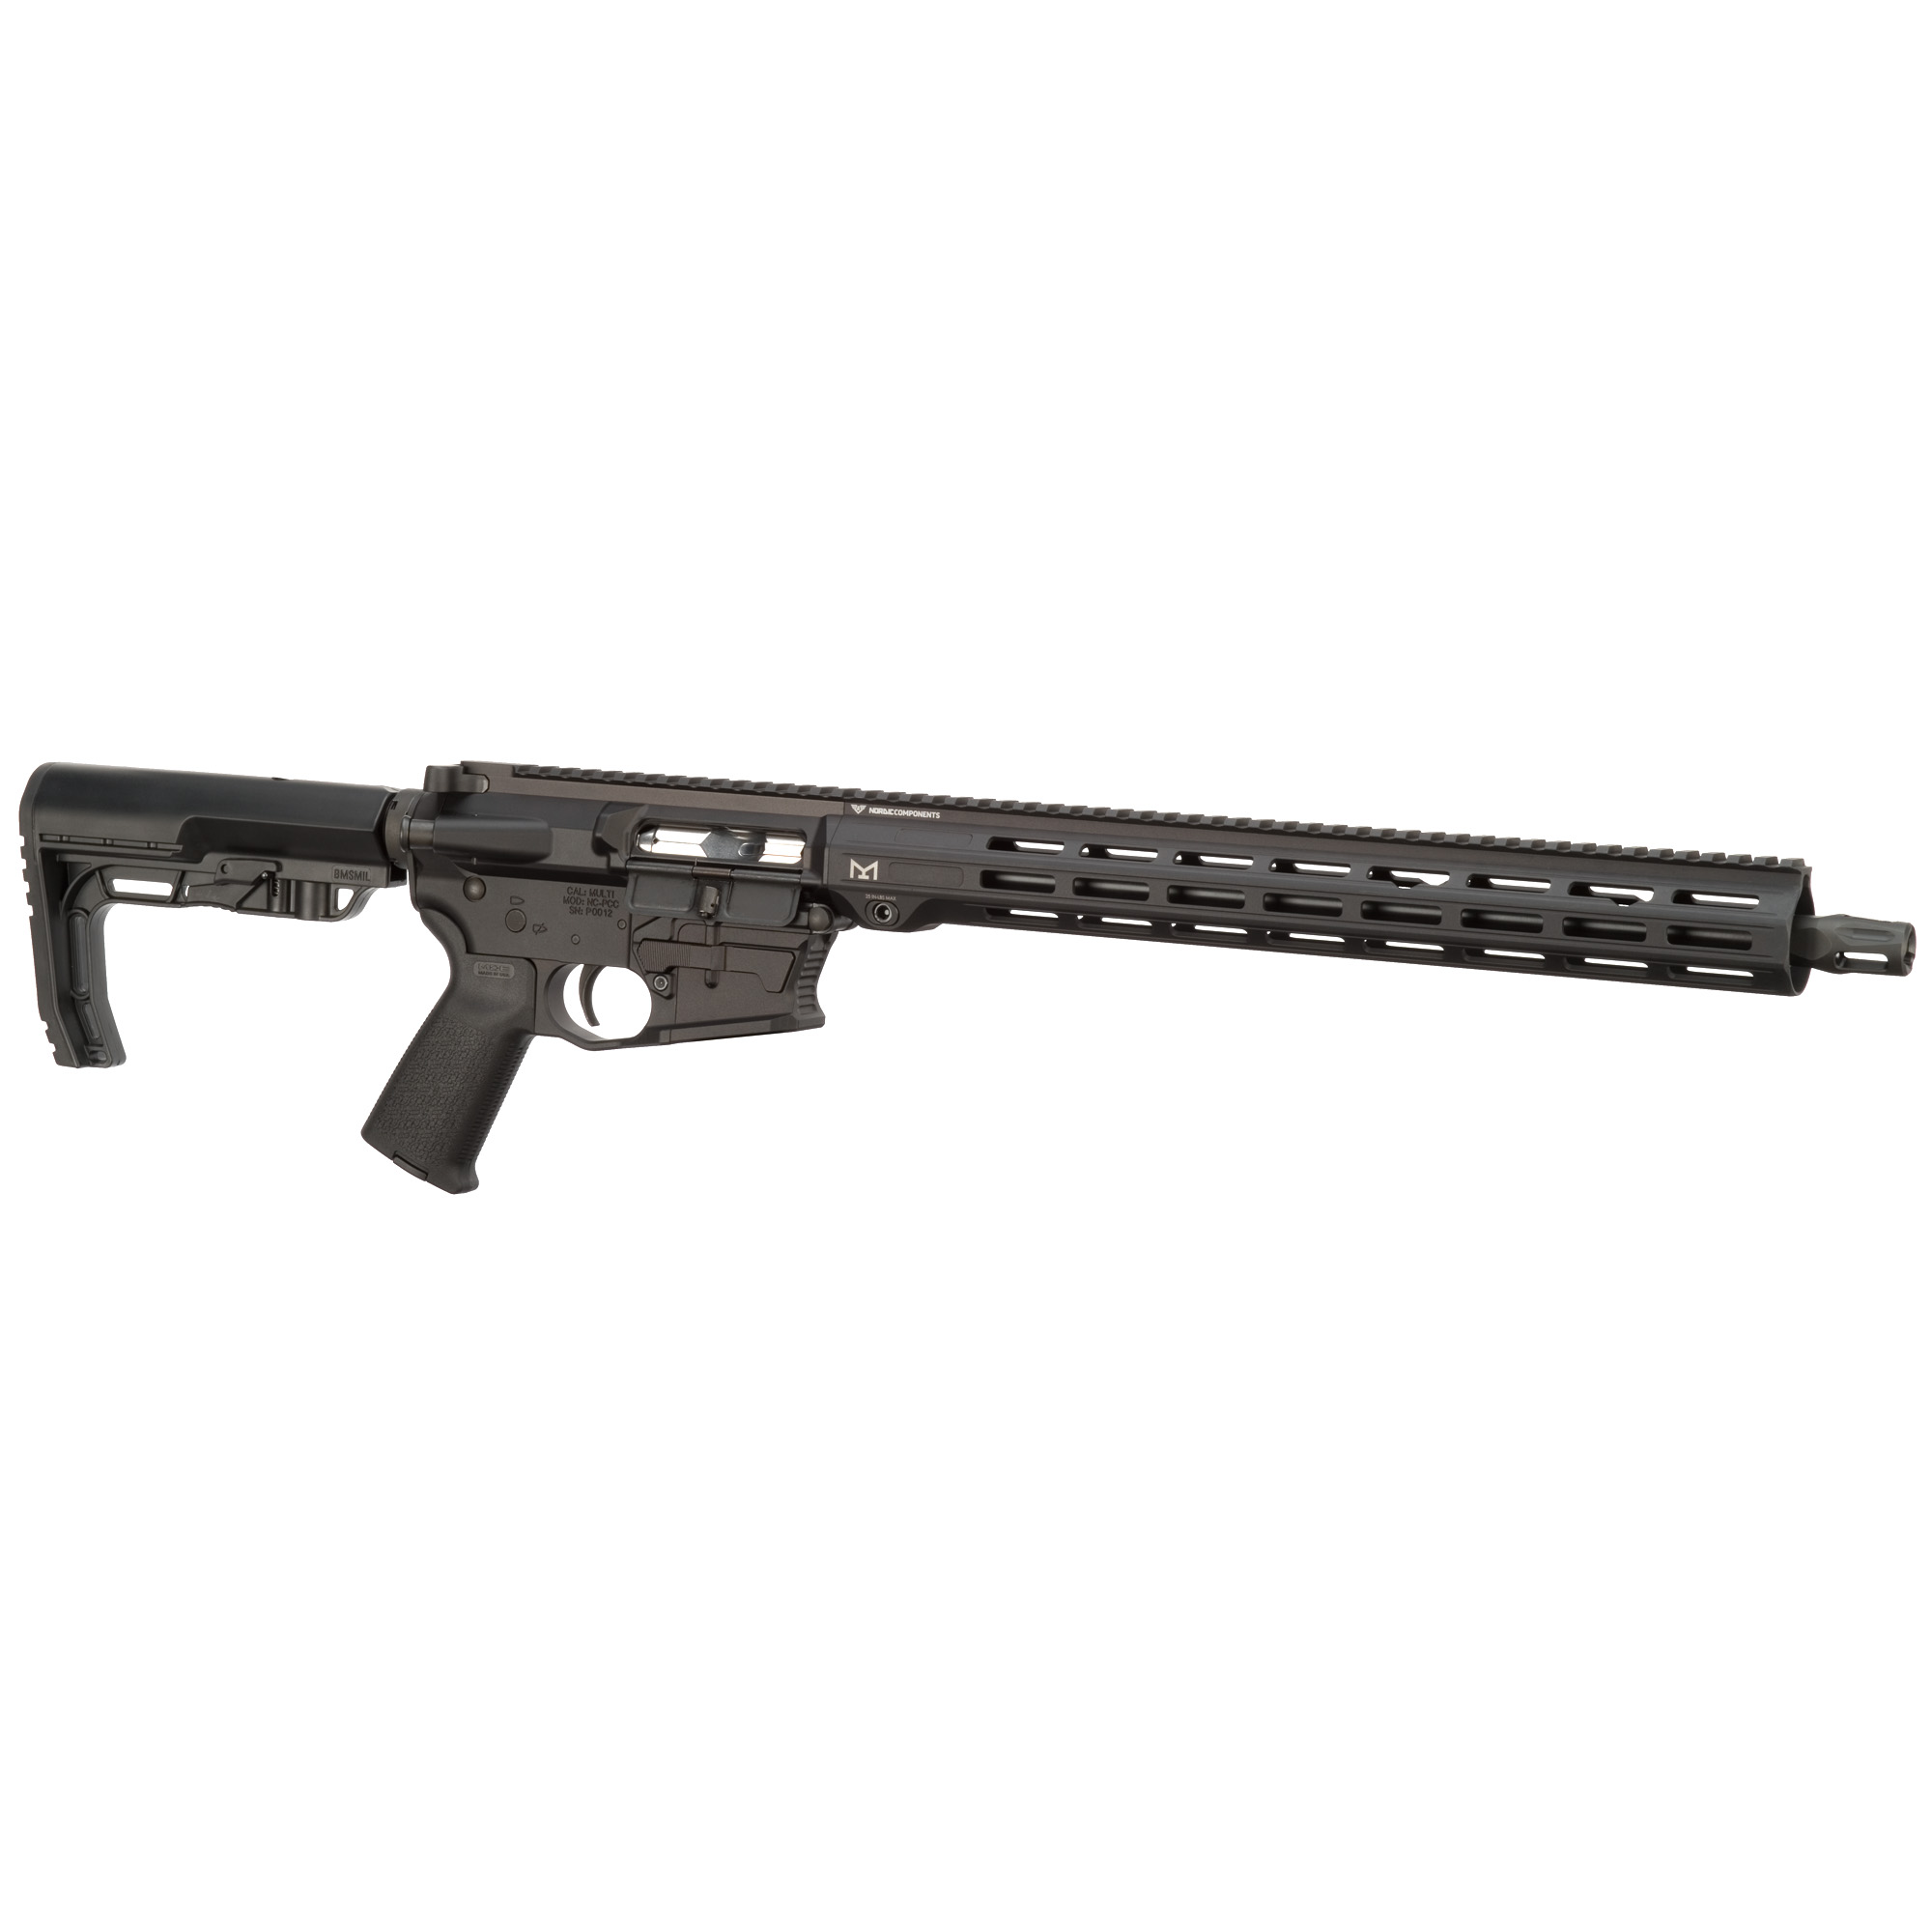 """The Pistol Caliber Carbine features a patented modular lower receiver with removable / interchangeable magwell"""" allowing you to use more than one style of magazine."""